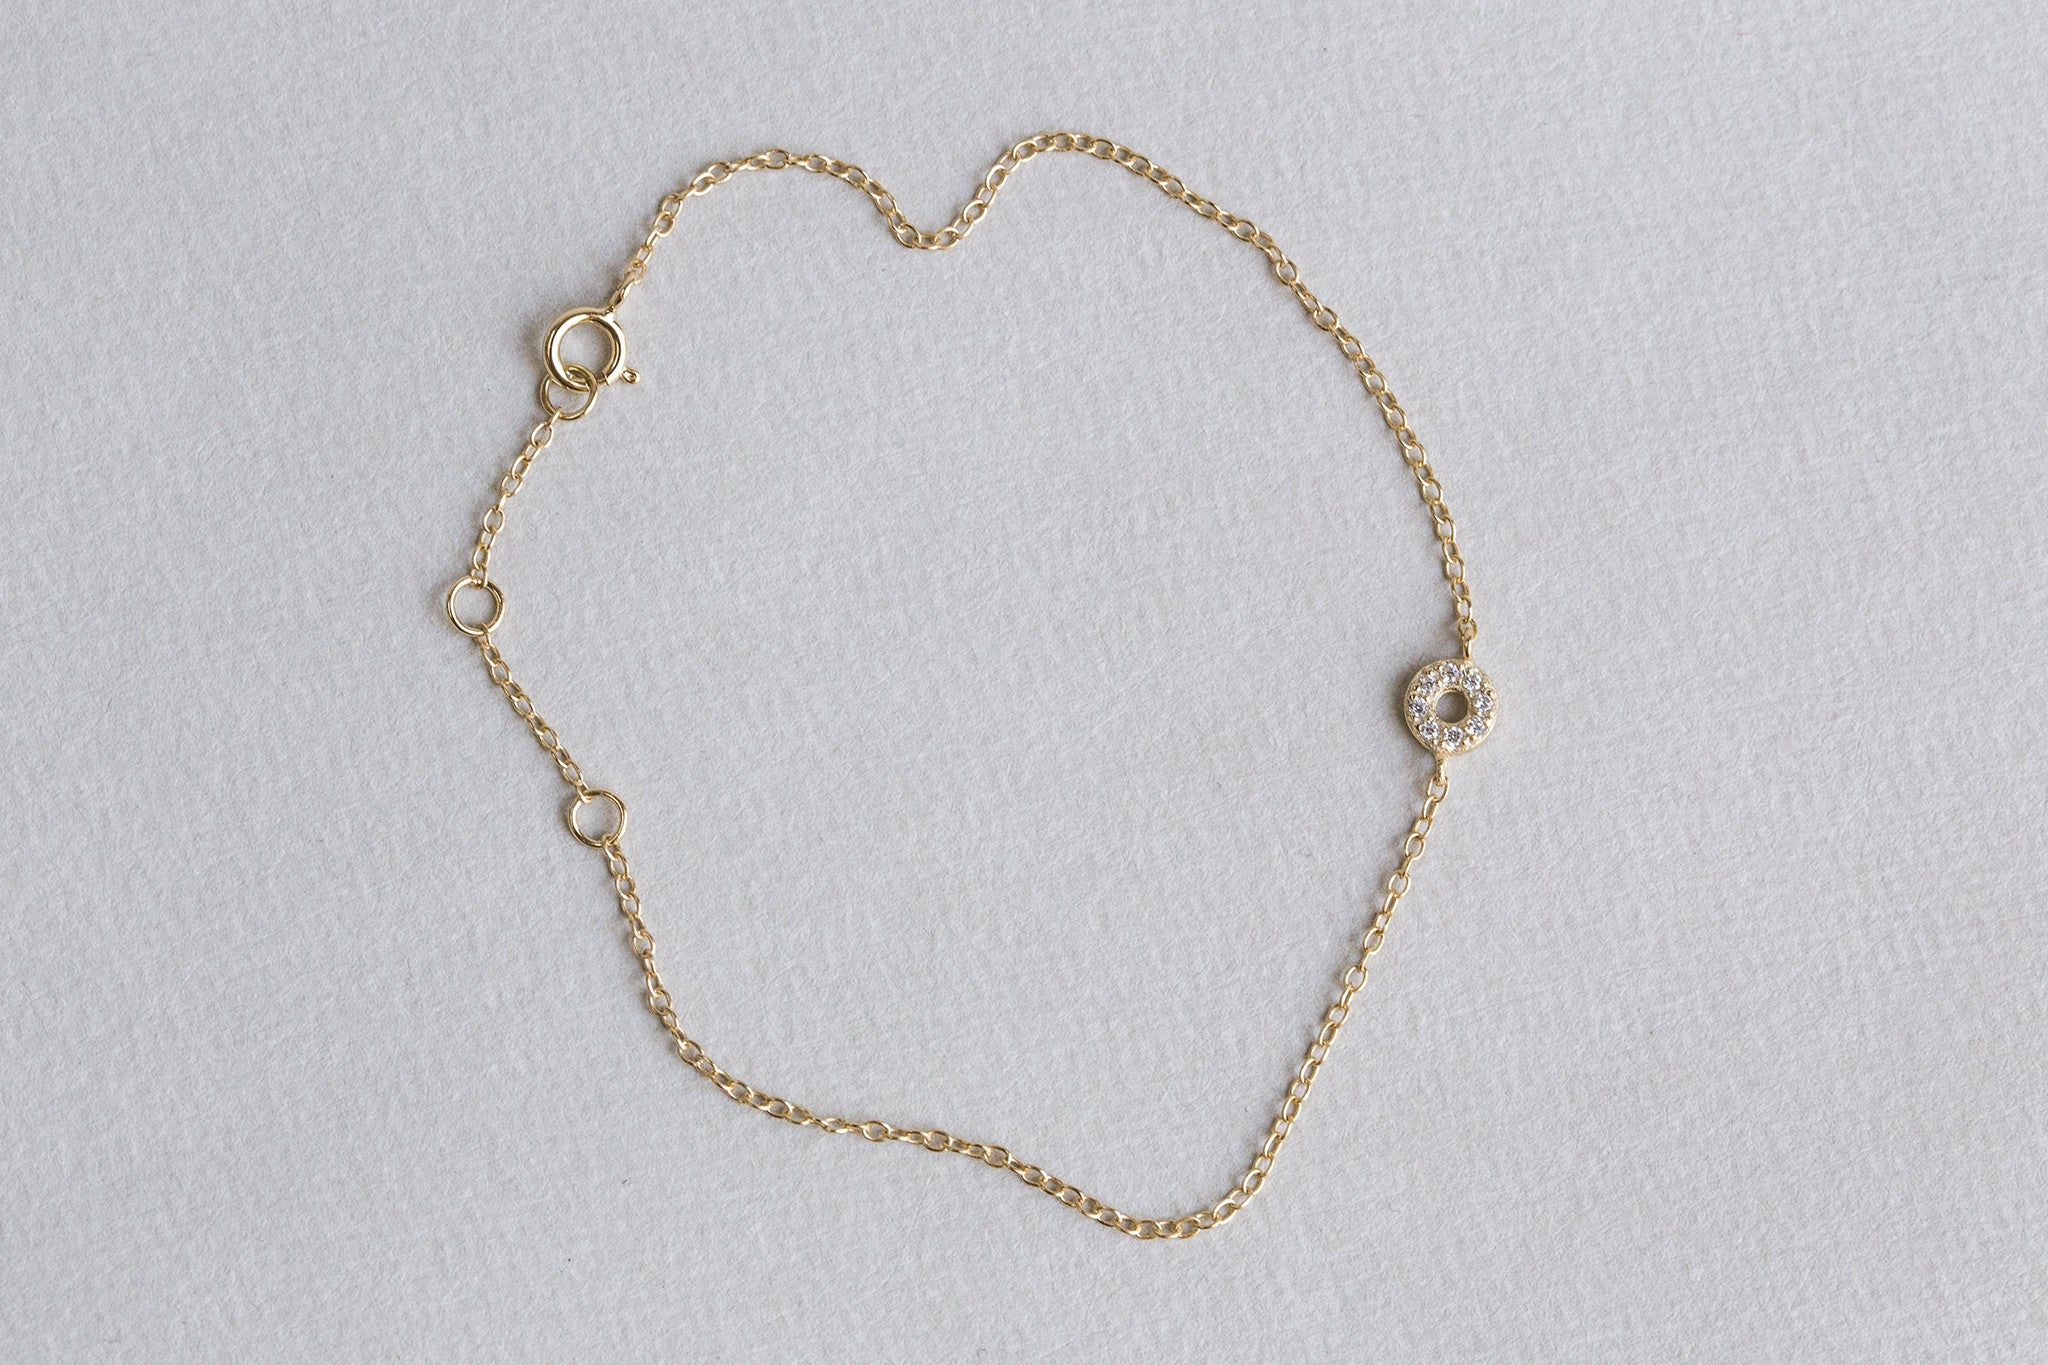 this bracelet is perfect for layering with other delicate bracelets